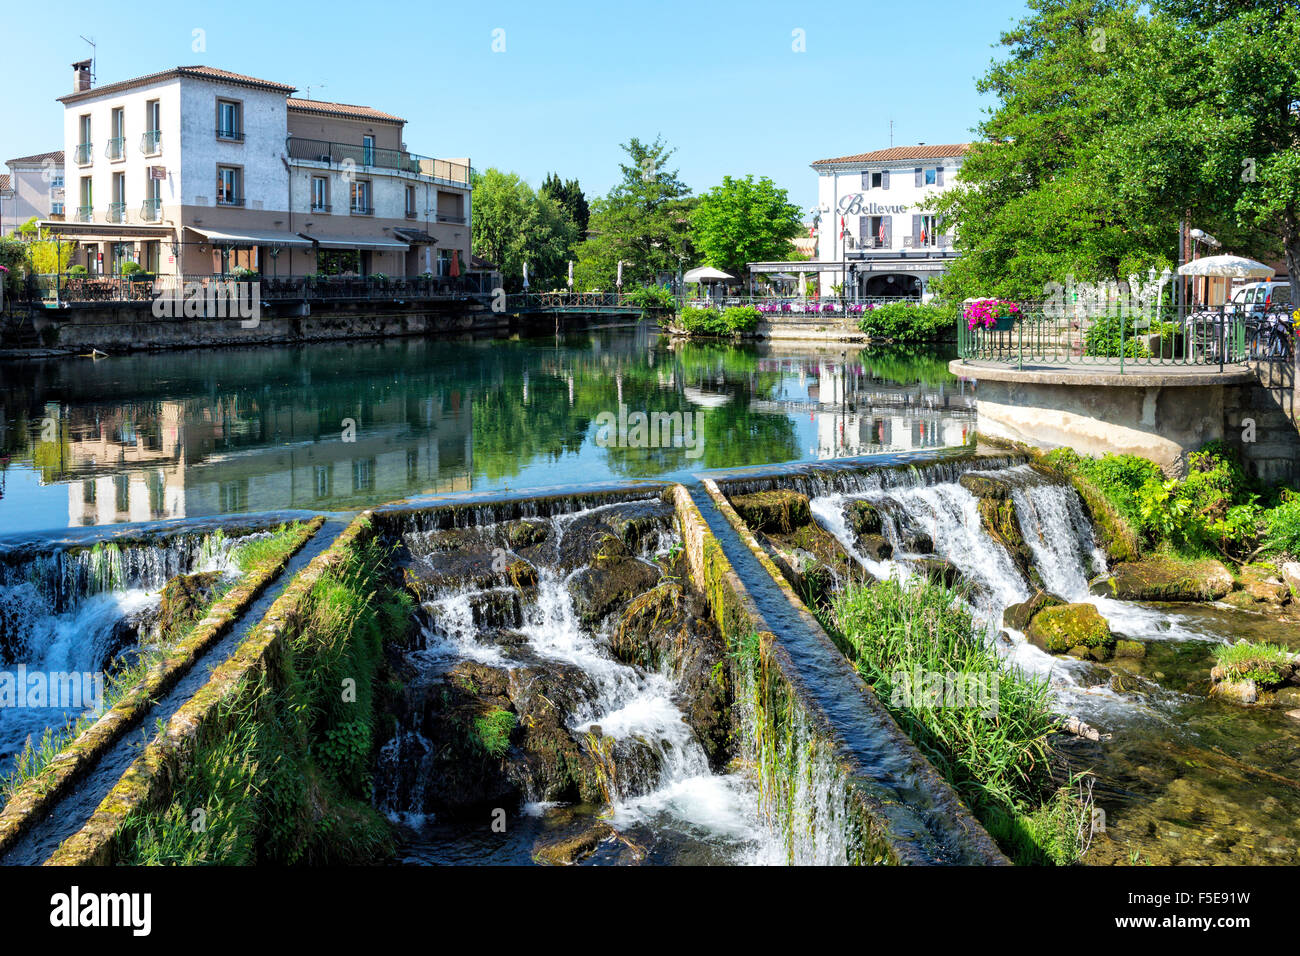 waterways l 39 isle sur la sorgue vaucluse provence alpes cote d 39 azur stock photo 89439557 alamy. Black Bedroom Furniture Sets. Home Design Ideas